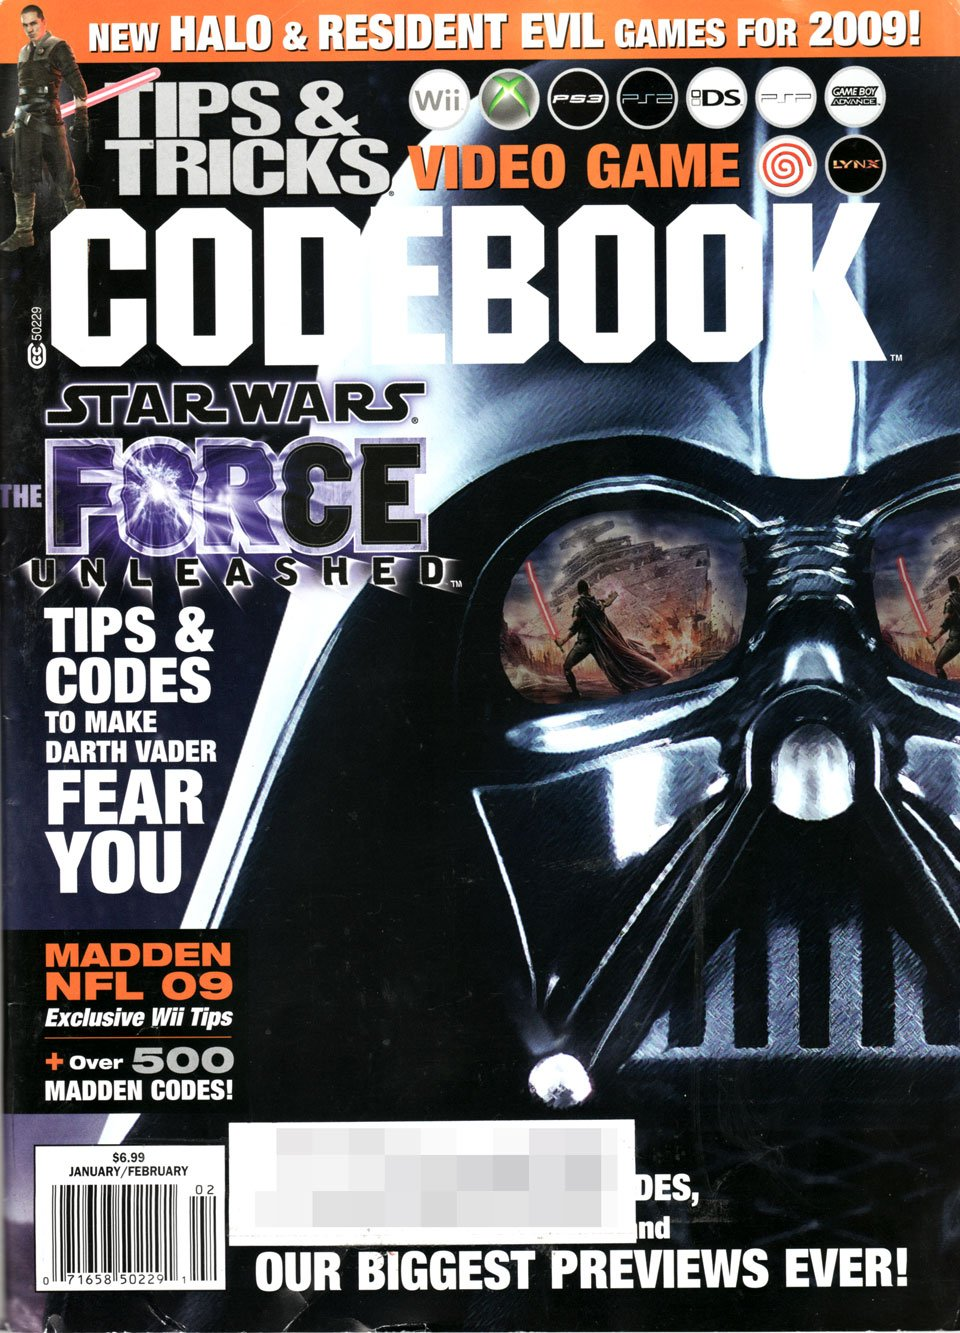 Tips & Tricks Video Game Codebook (January / February 2009)